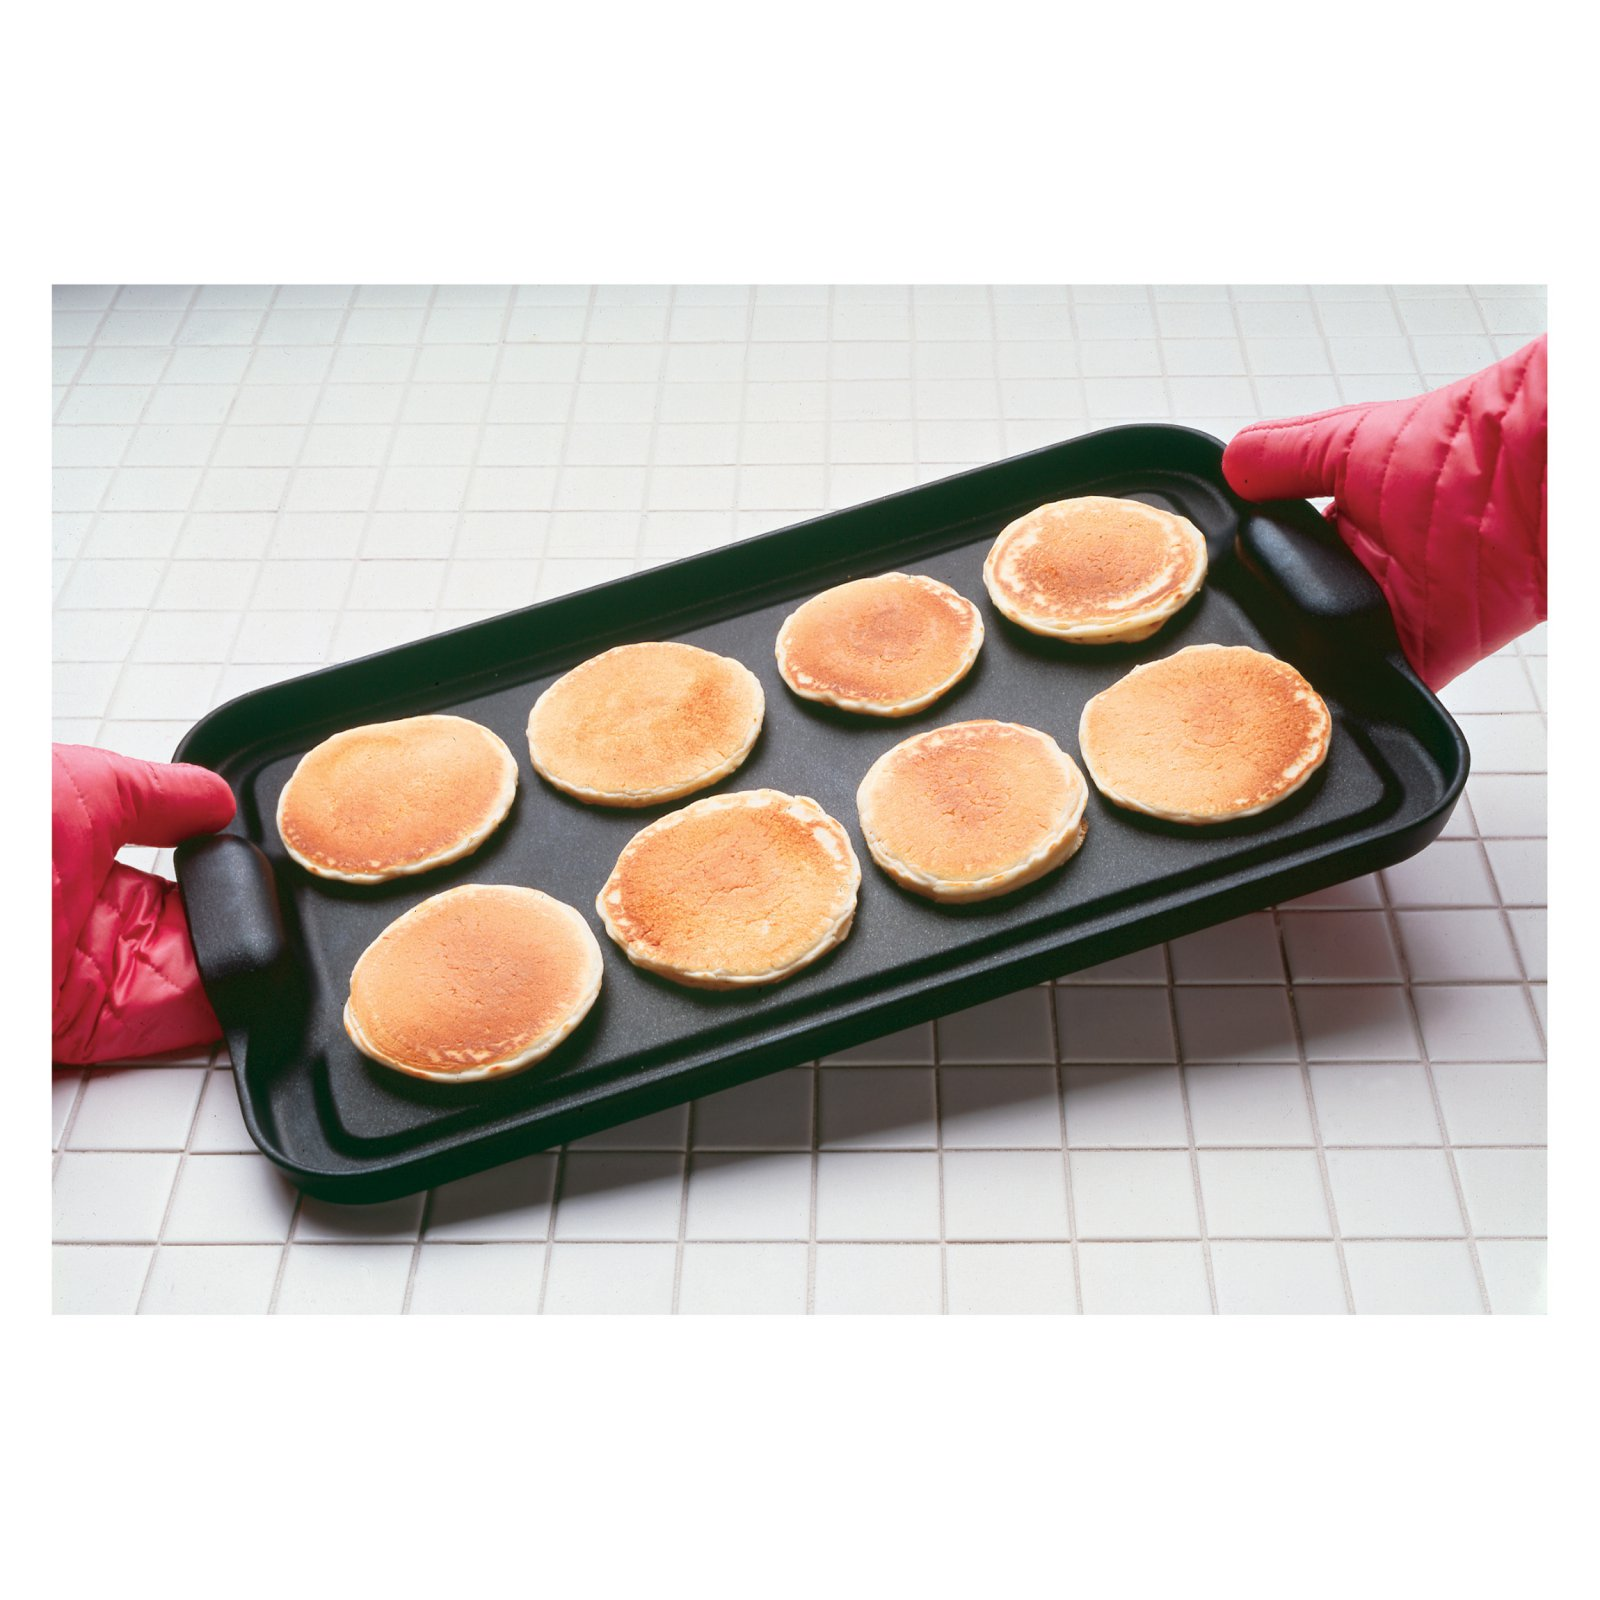 Chef's Design Maxi Griddle with Excalibur